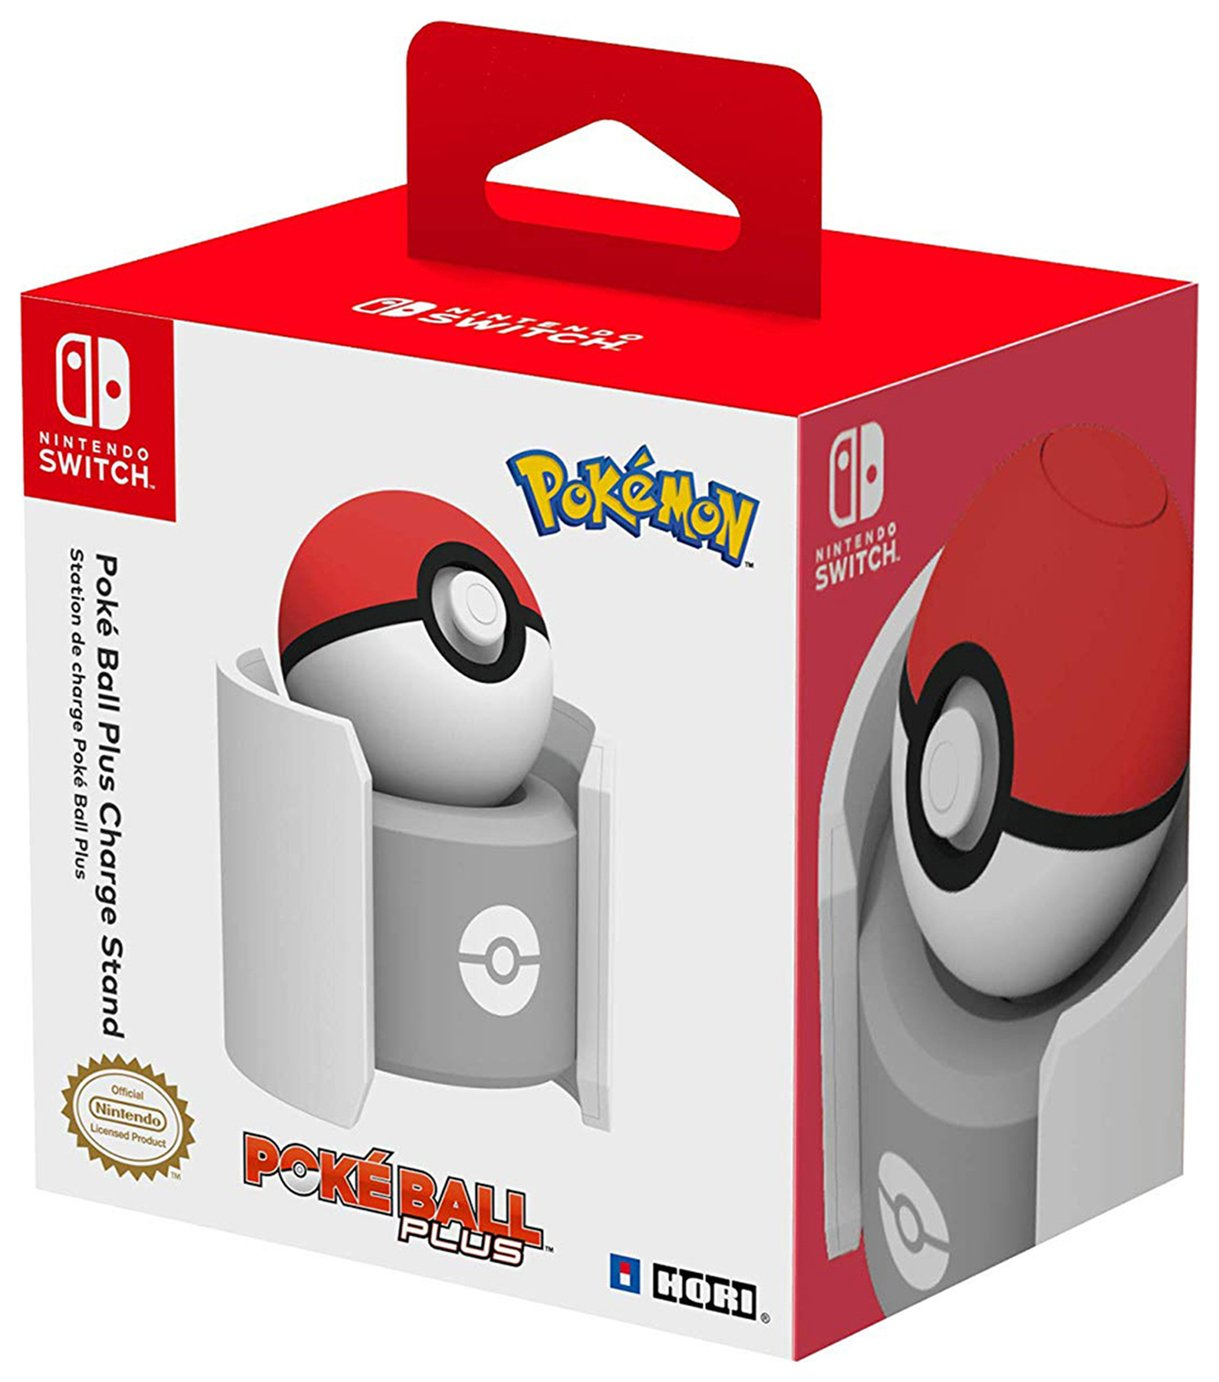 Pokeball Plus Nintendo Switch Controller Charging Stand